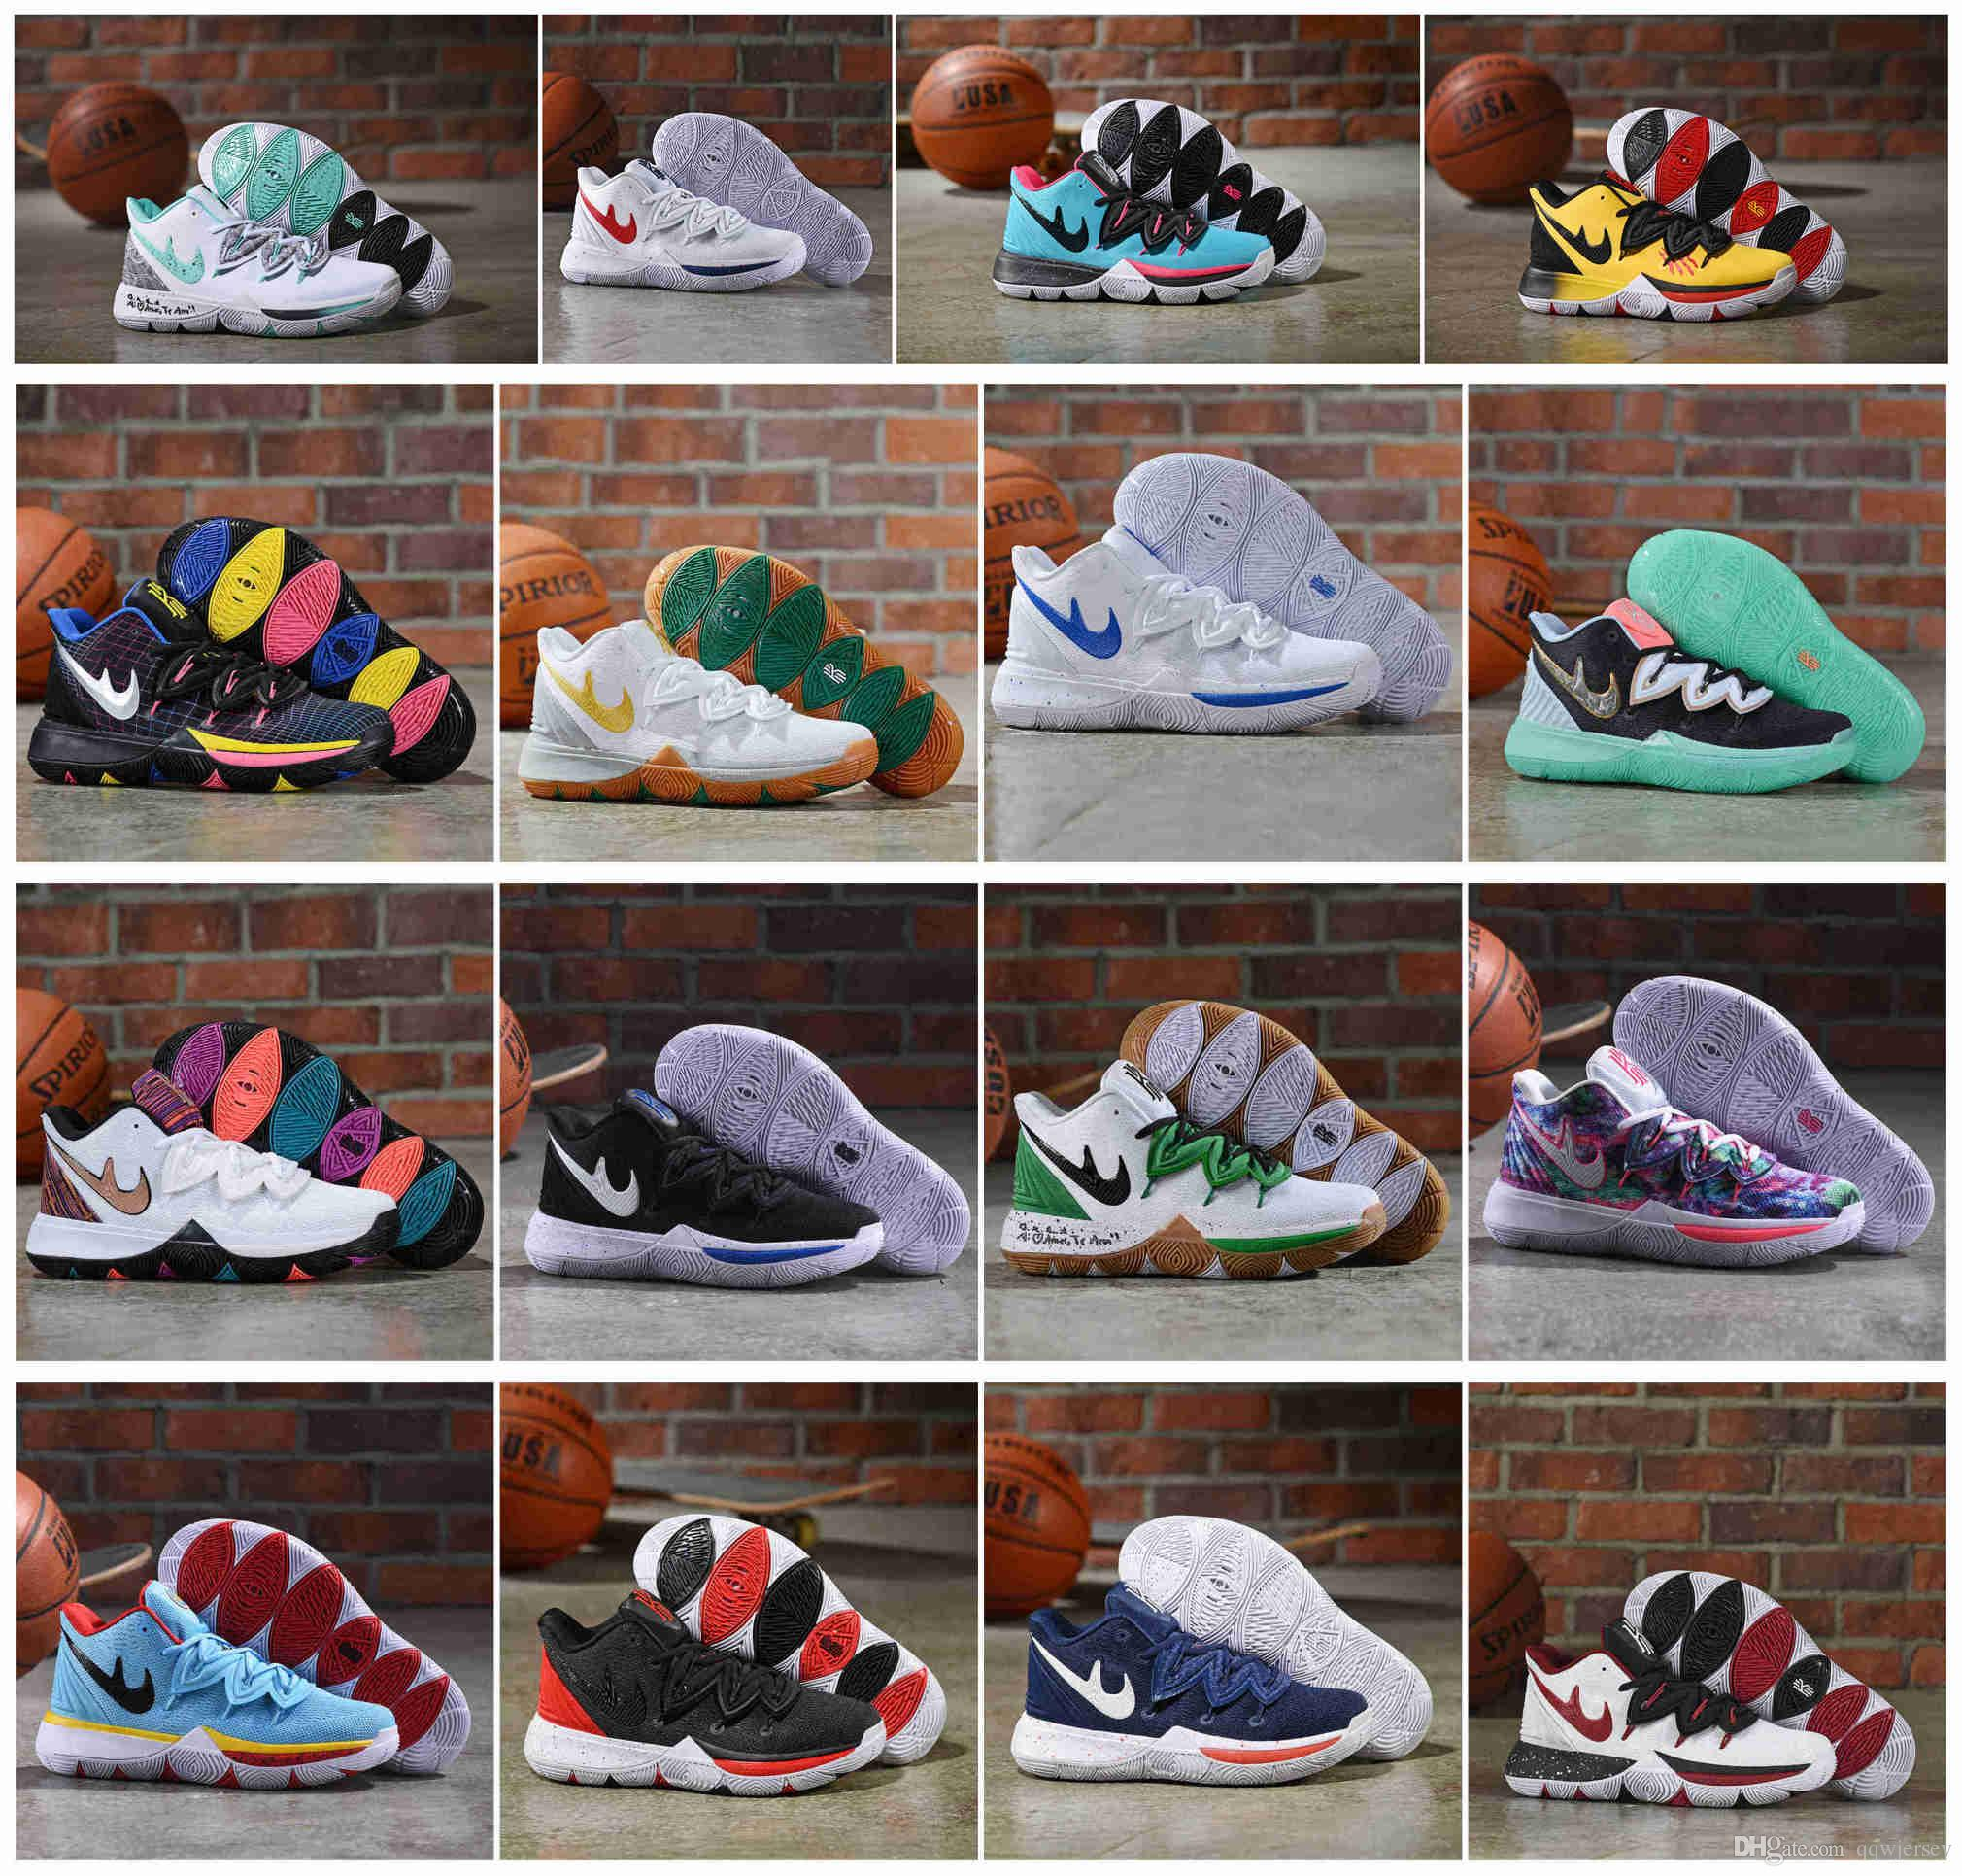 new concept 79a0d 74845 2019 New Mens Kyrie 5.0 Green Shoes white Blue Red Men KYRIE 5 Sports Shoes  11 Irving Outdoors mens Basketball trainer sneakers